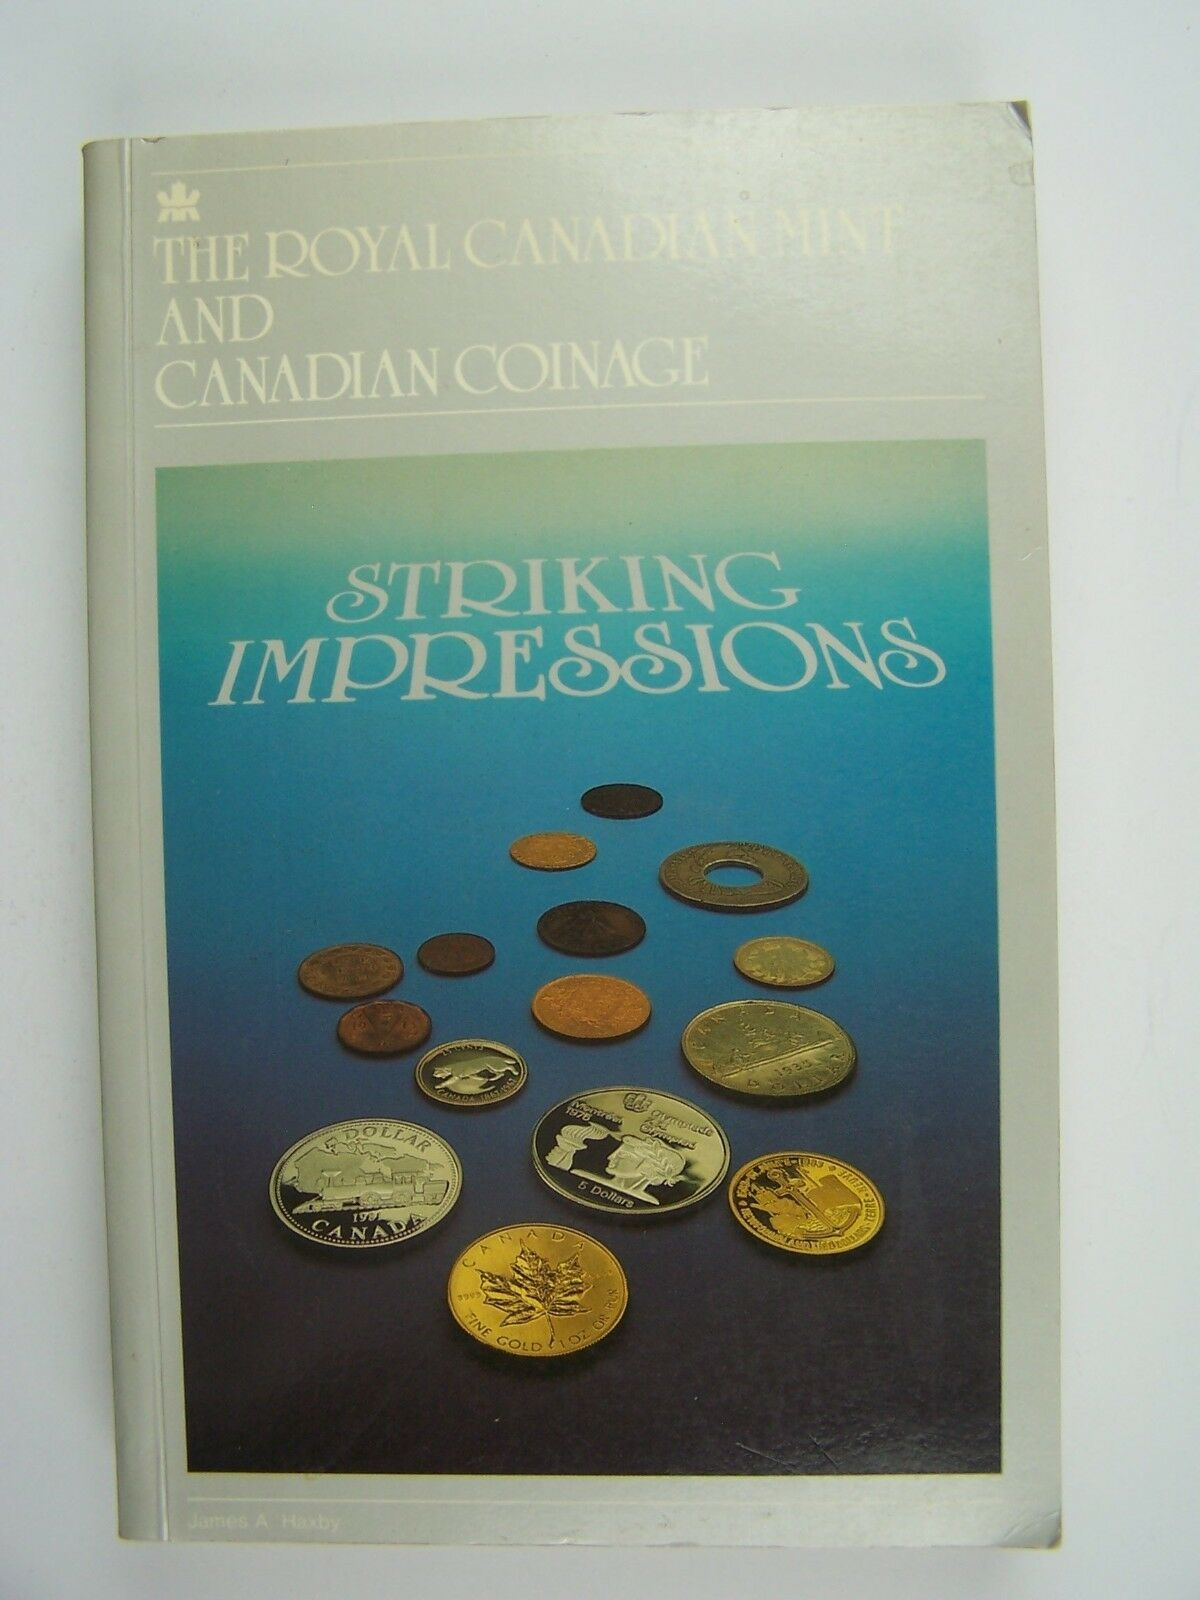 Striking Impressions: The Royal Canadian Mint & Canadia